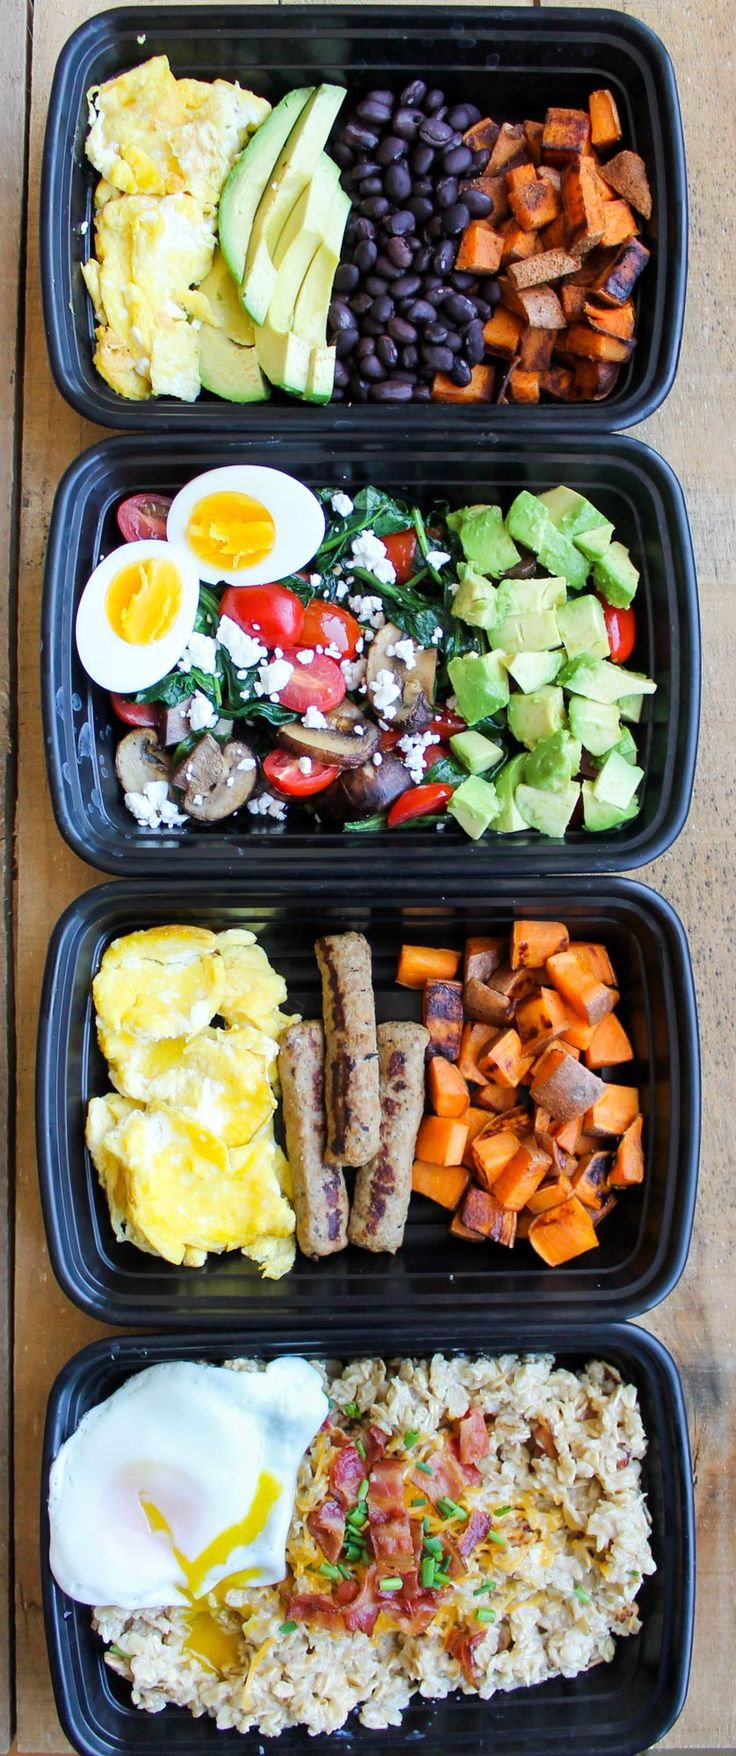 Make-Ahead Breakfast Meal Prep Bowls: 4 Ways - Smile Sandwich